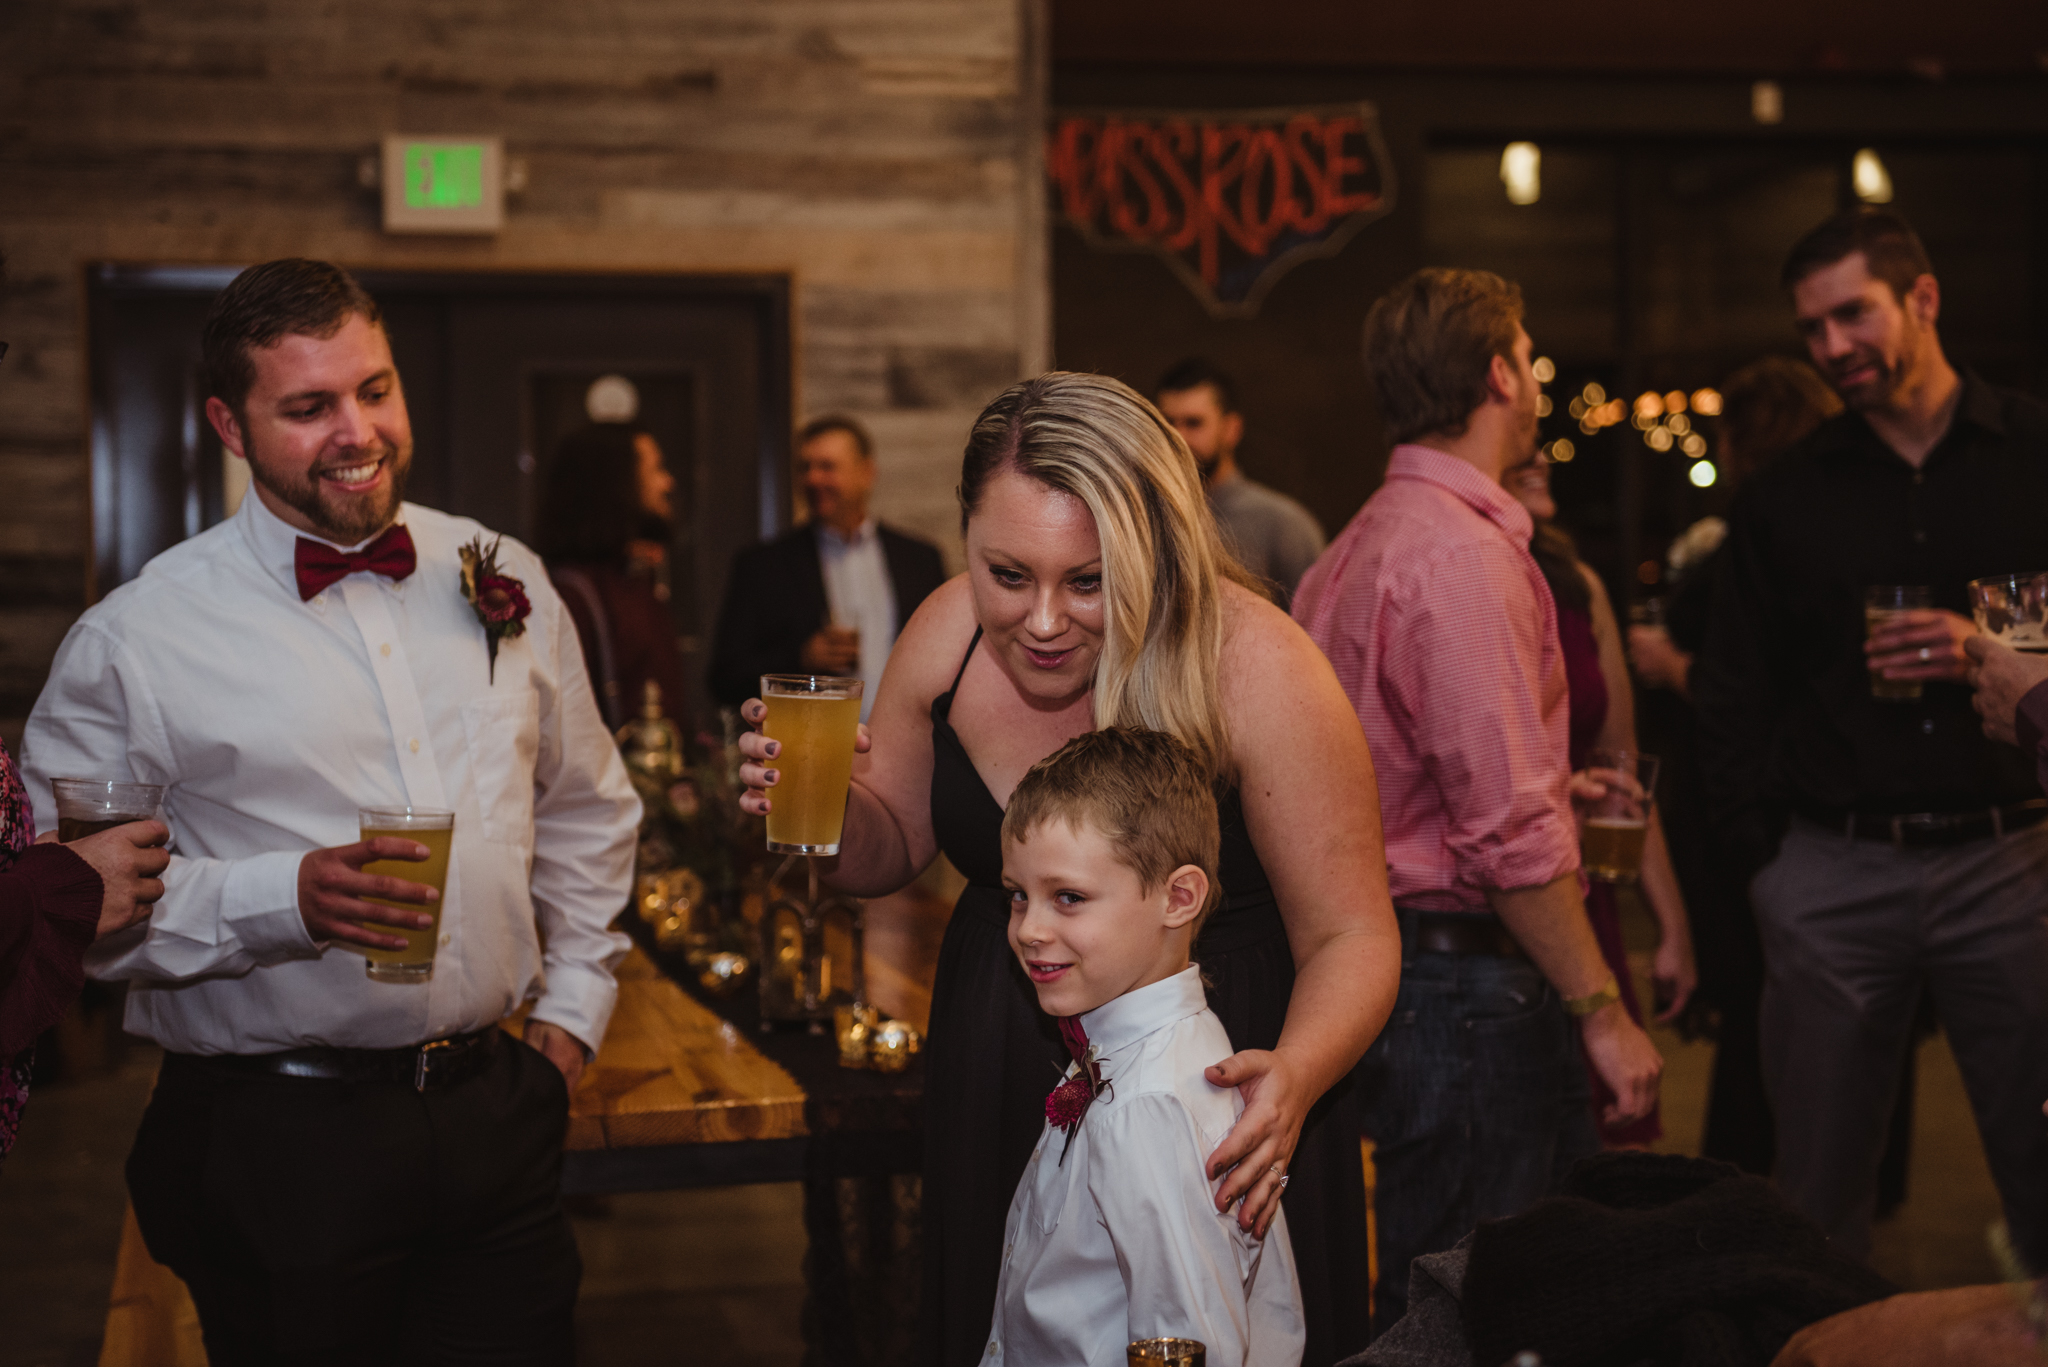 the-bride-and-groom-hug-their-son-at-the-reception.jpg